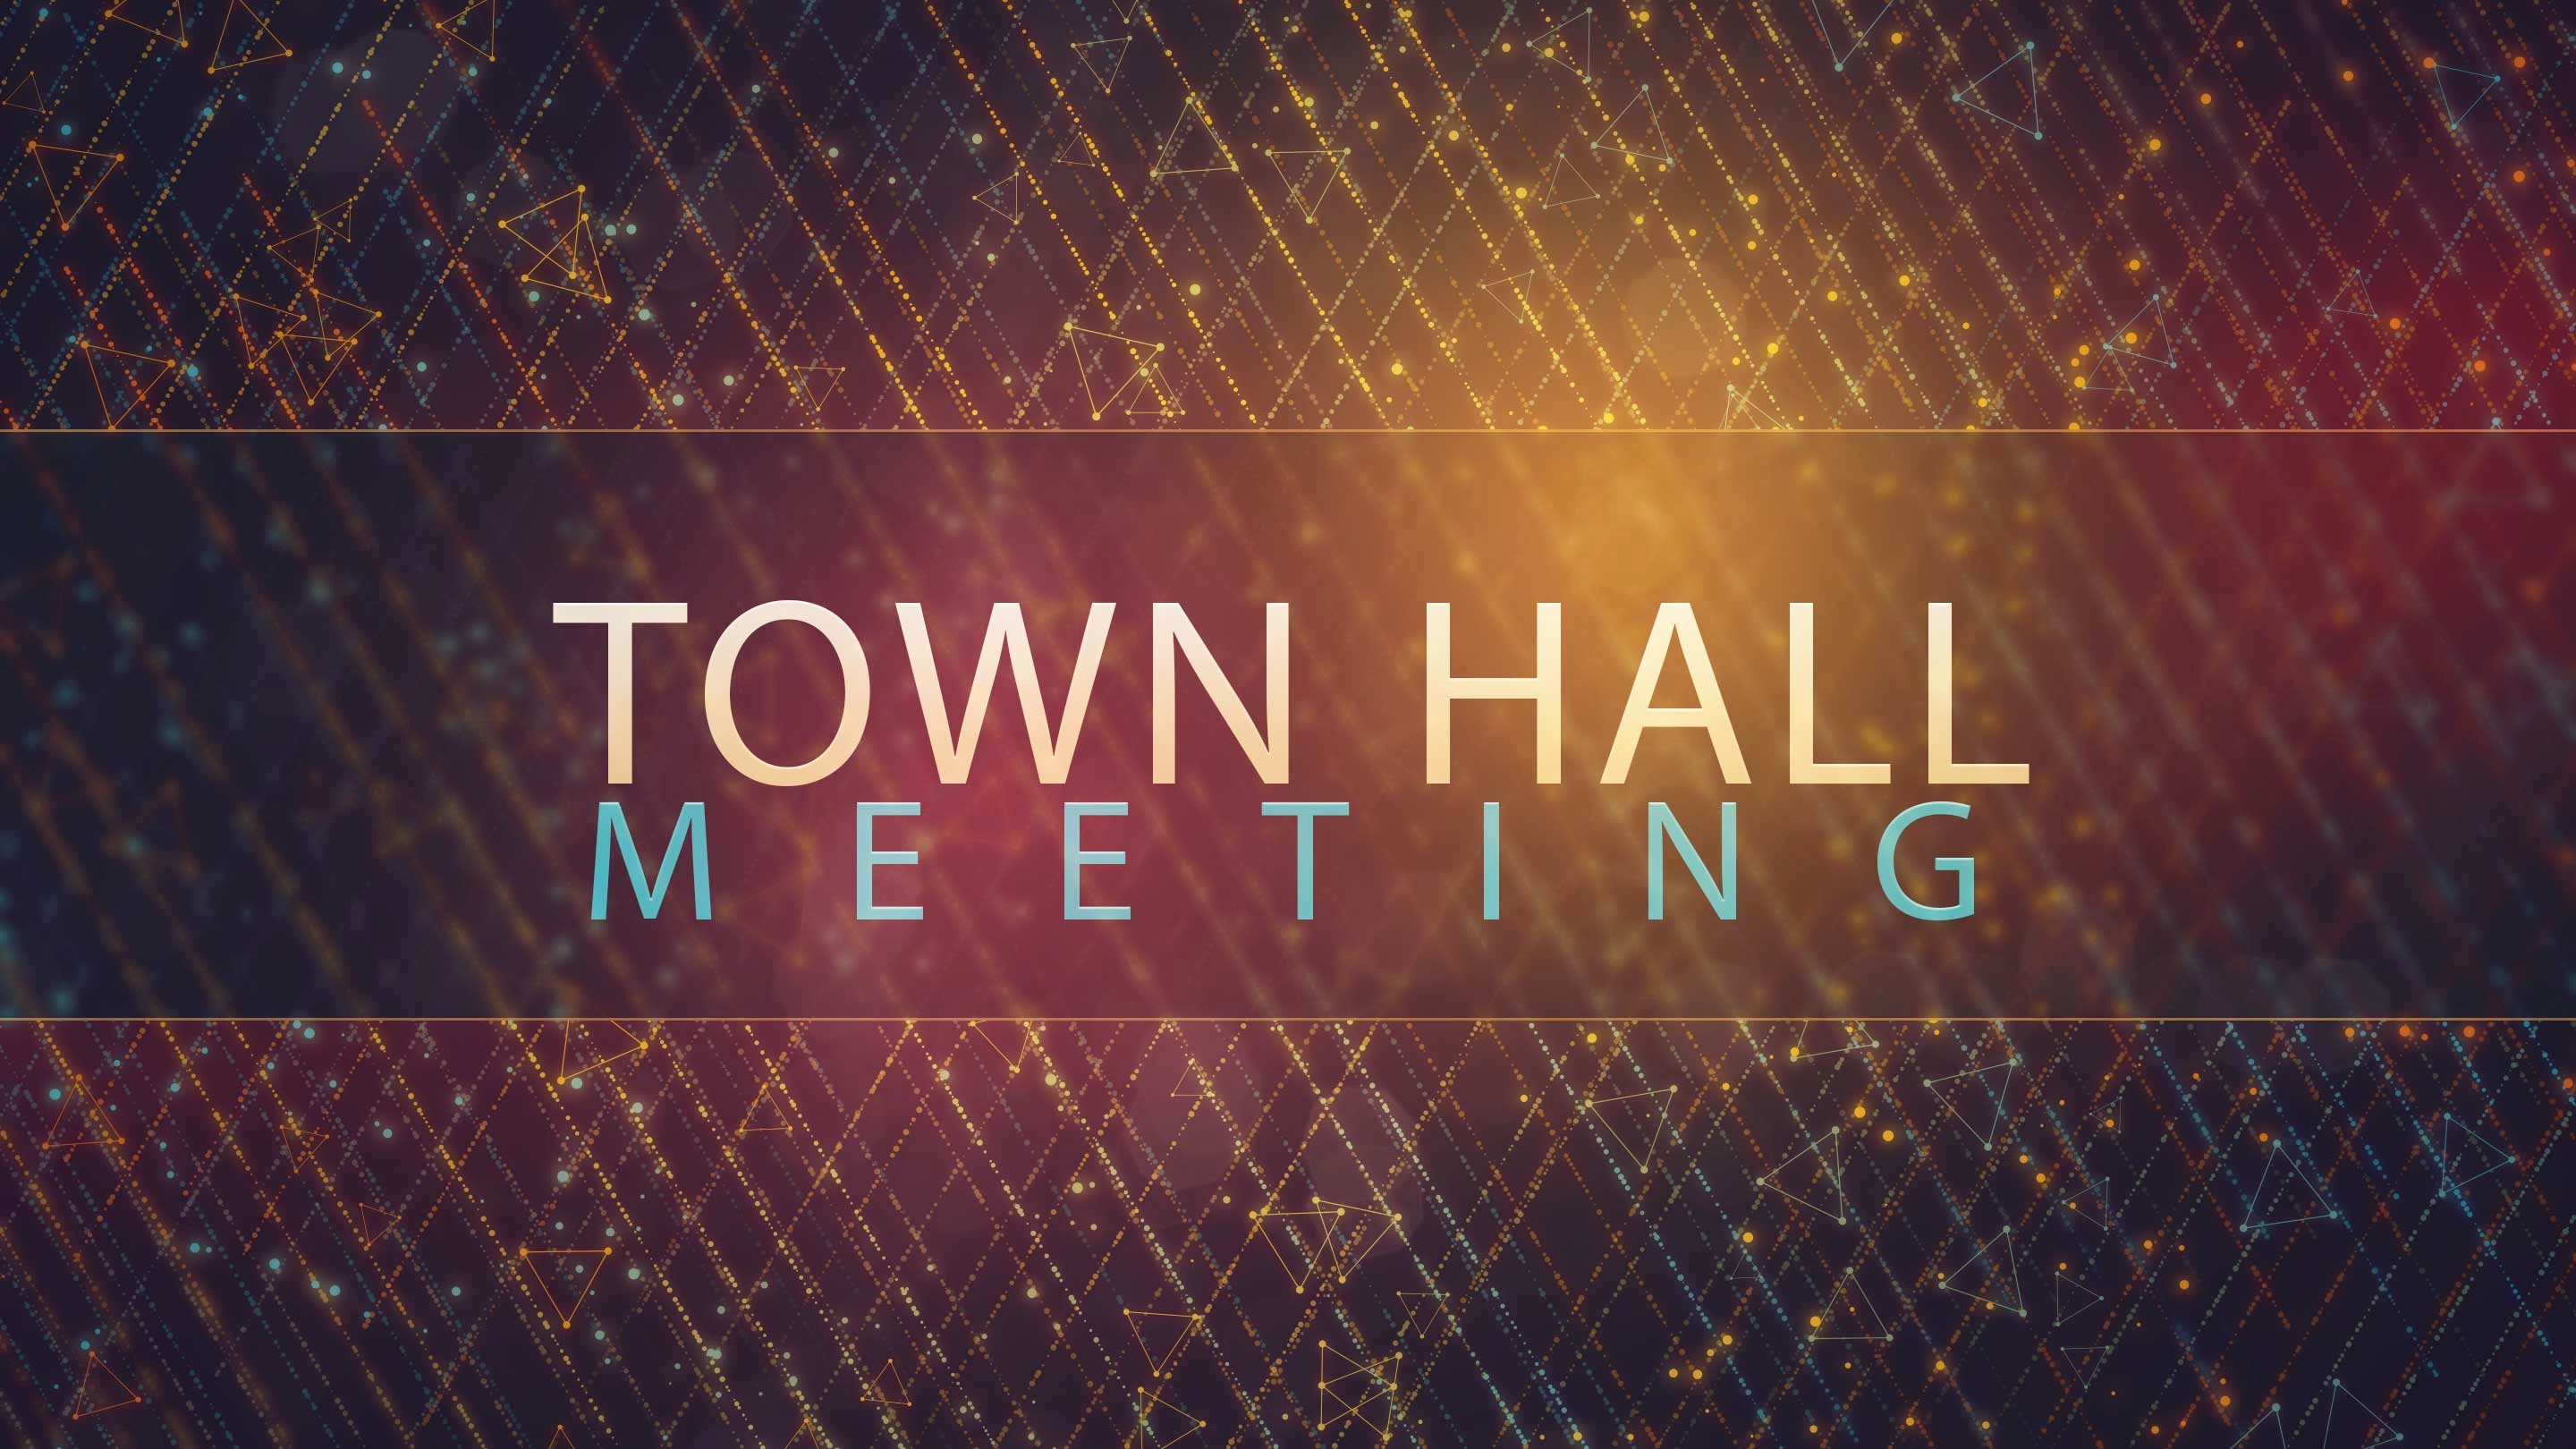 Town Hall Meeting Agenda Template Awesome the Heart Of Insight Munity Of the Desert town Hall